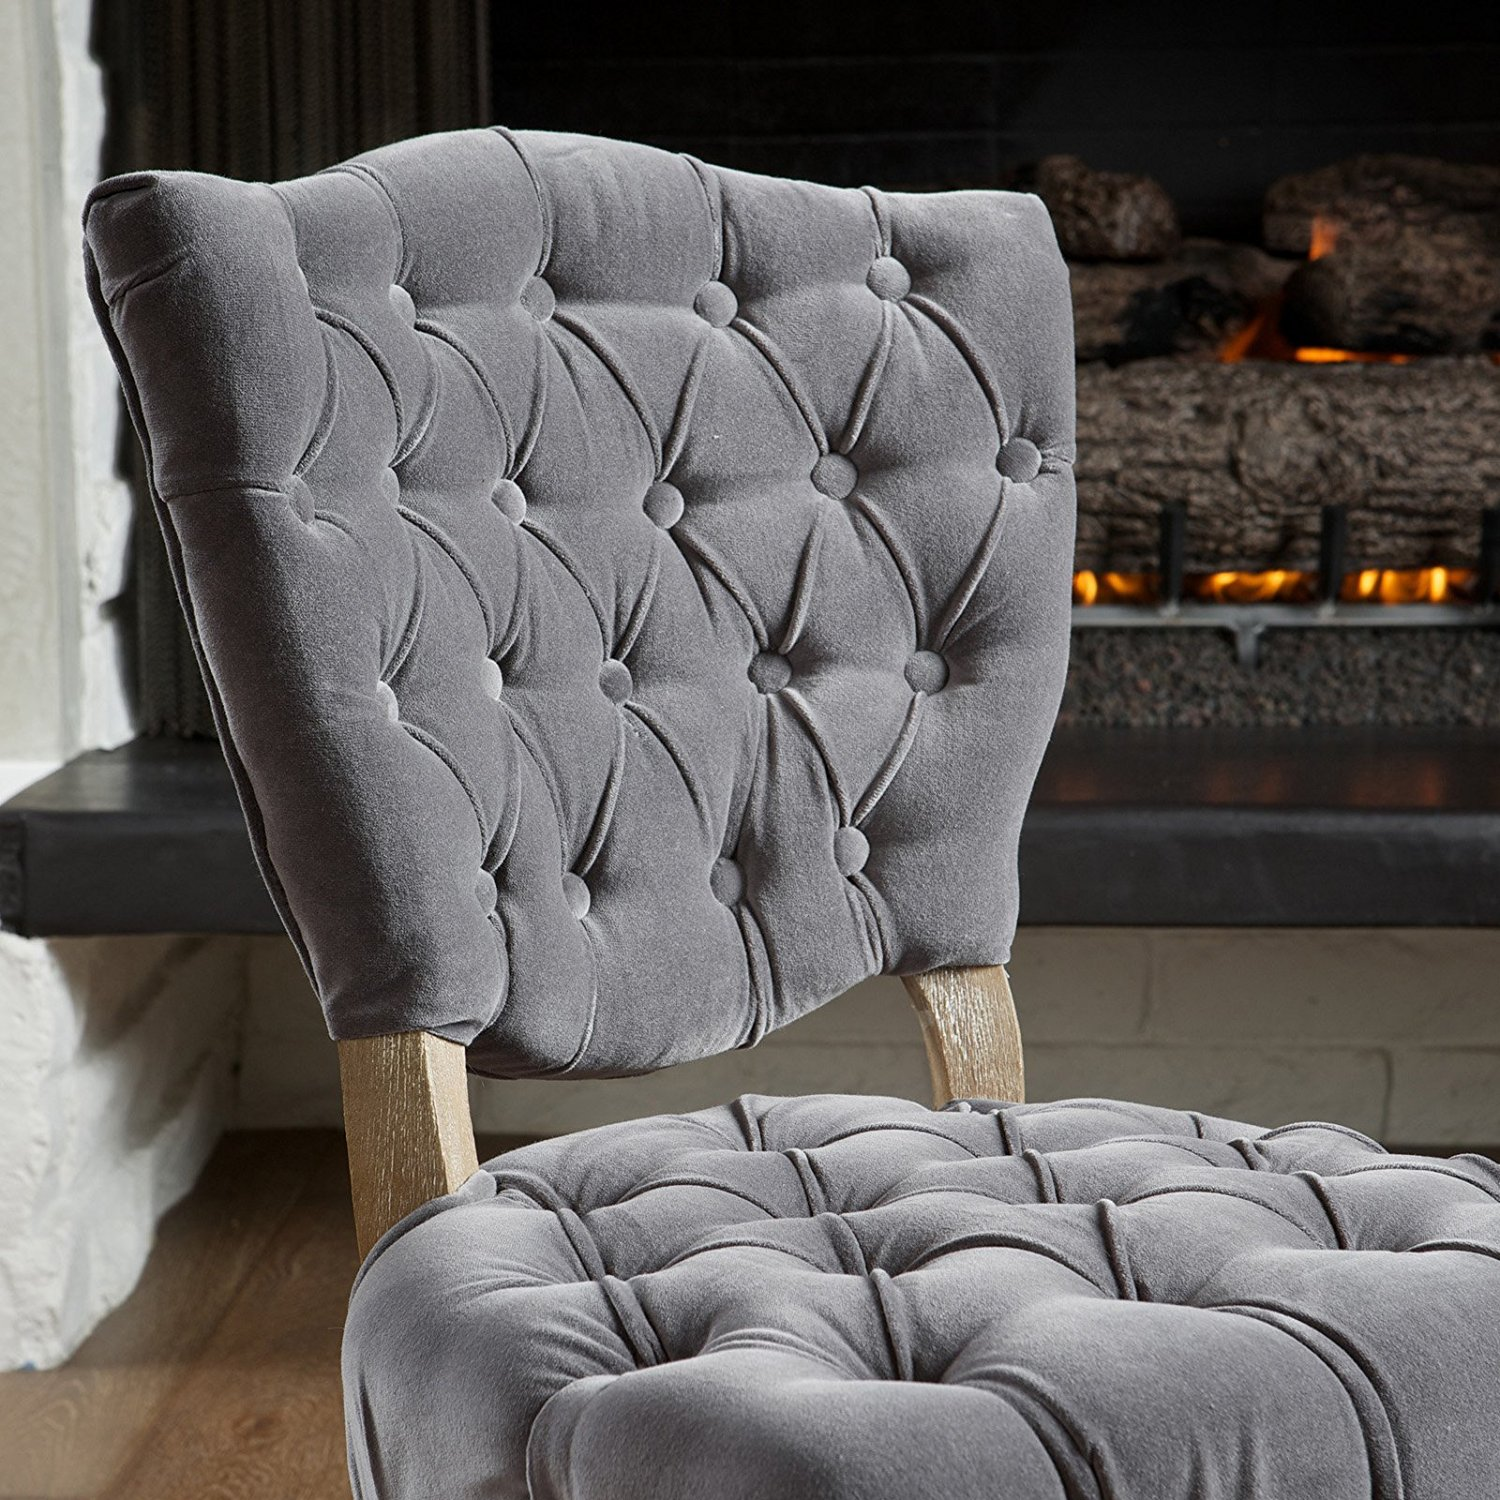 Navy Dining Room Chairs   Tufted Dining Chair   Grey Upholstered Dining Chairs